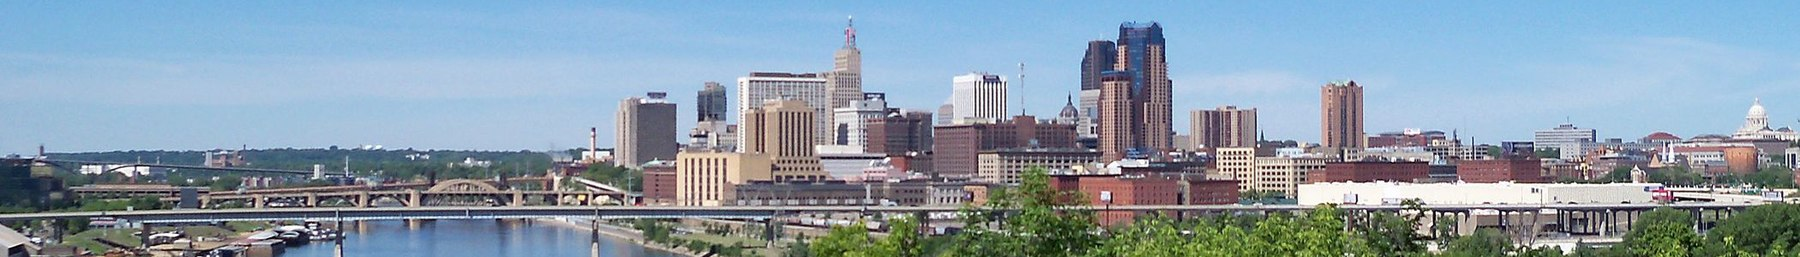 Saint Paul skyline banner.jpg